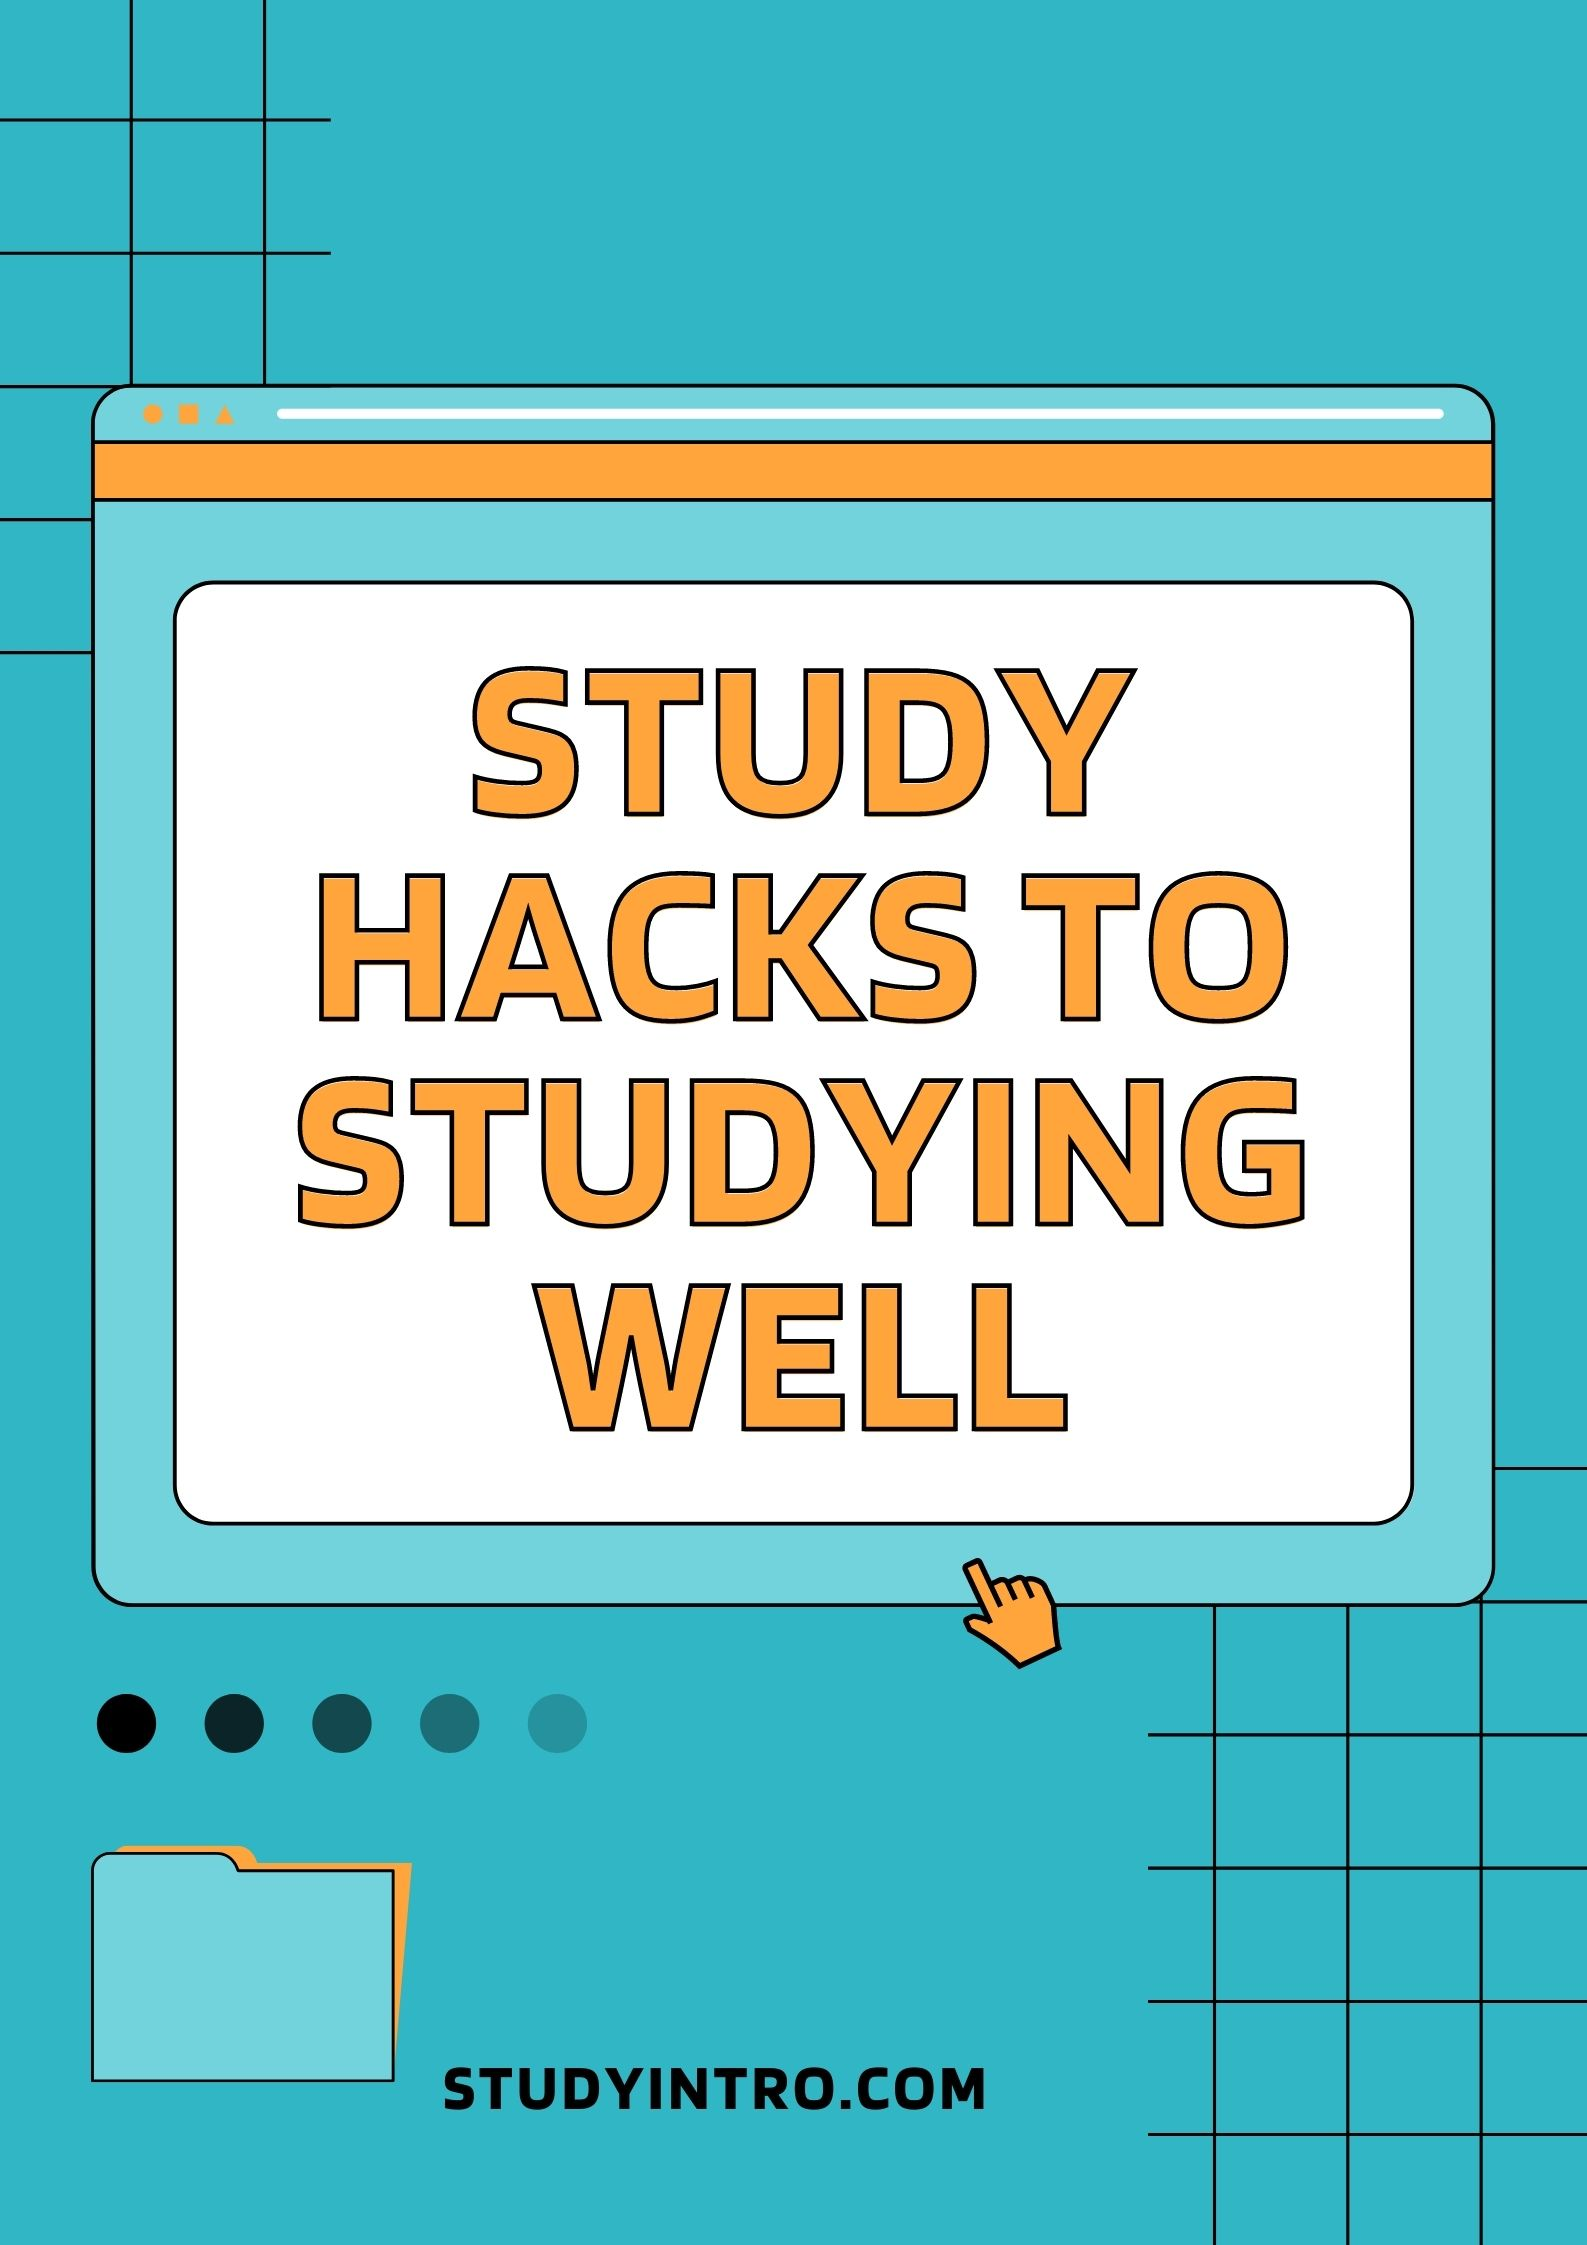 Study Hacks for Studying Well